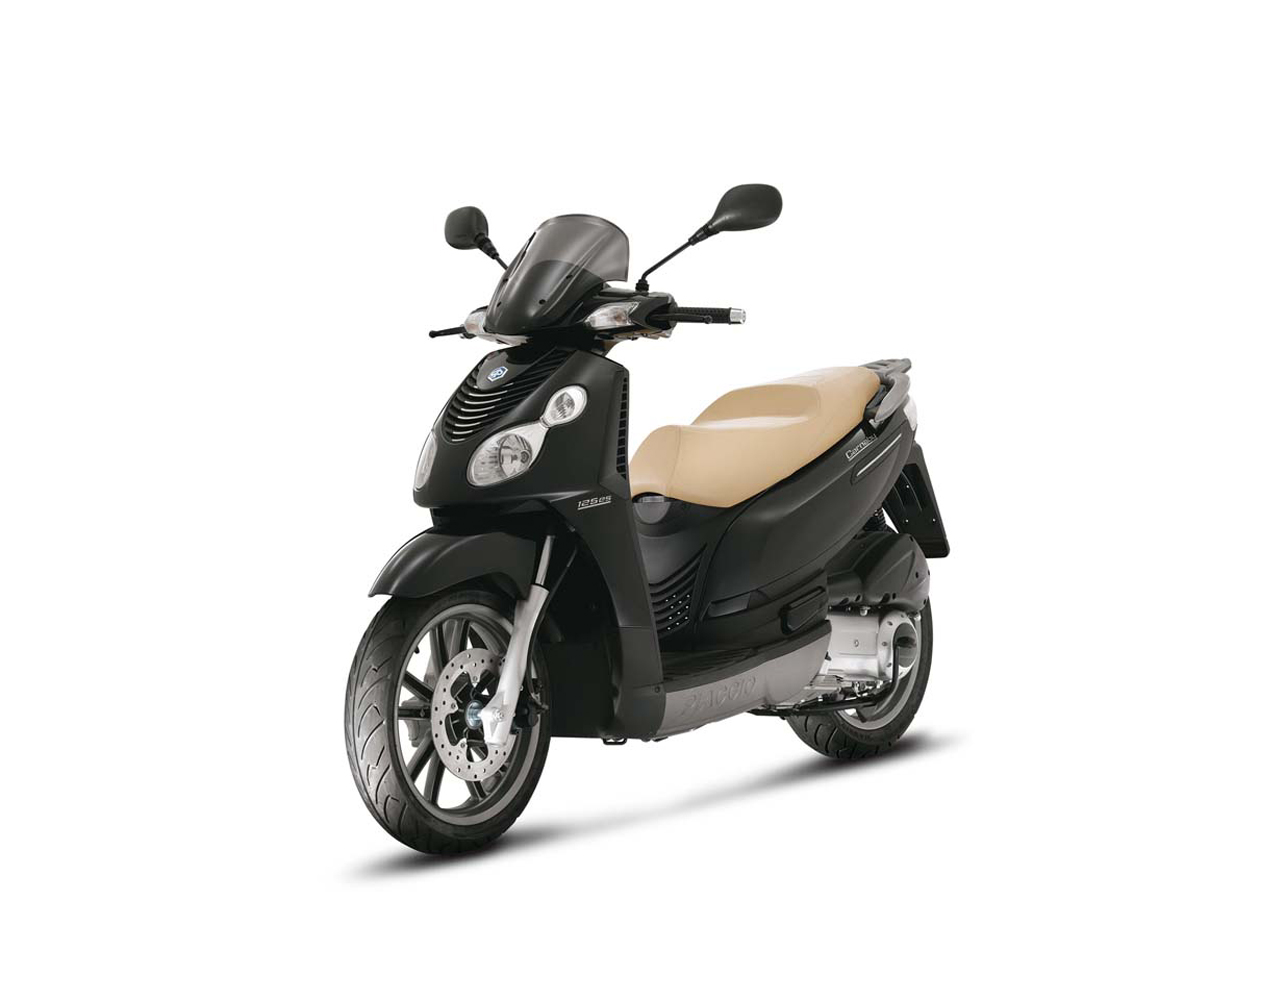 2008 Piaggio Carnaby 125   Top Speed